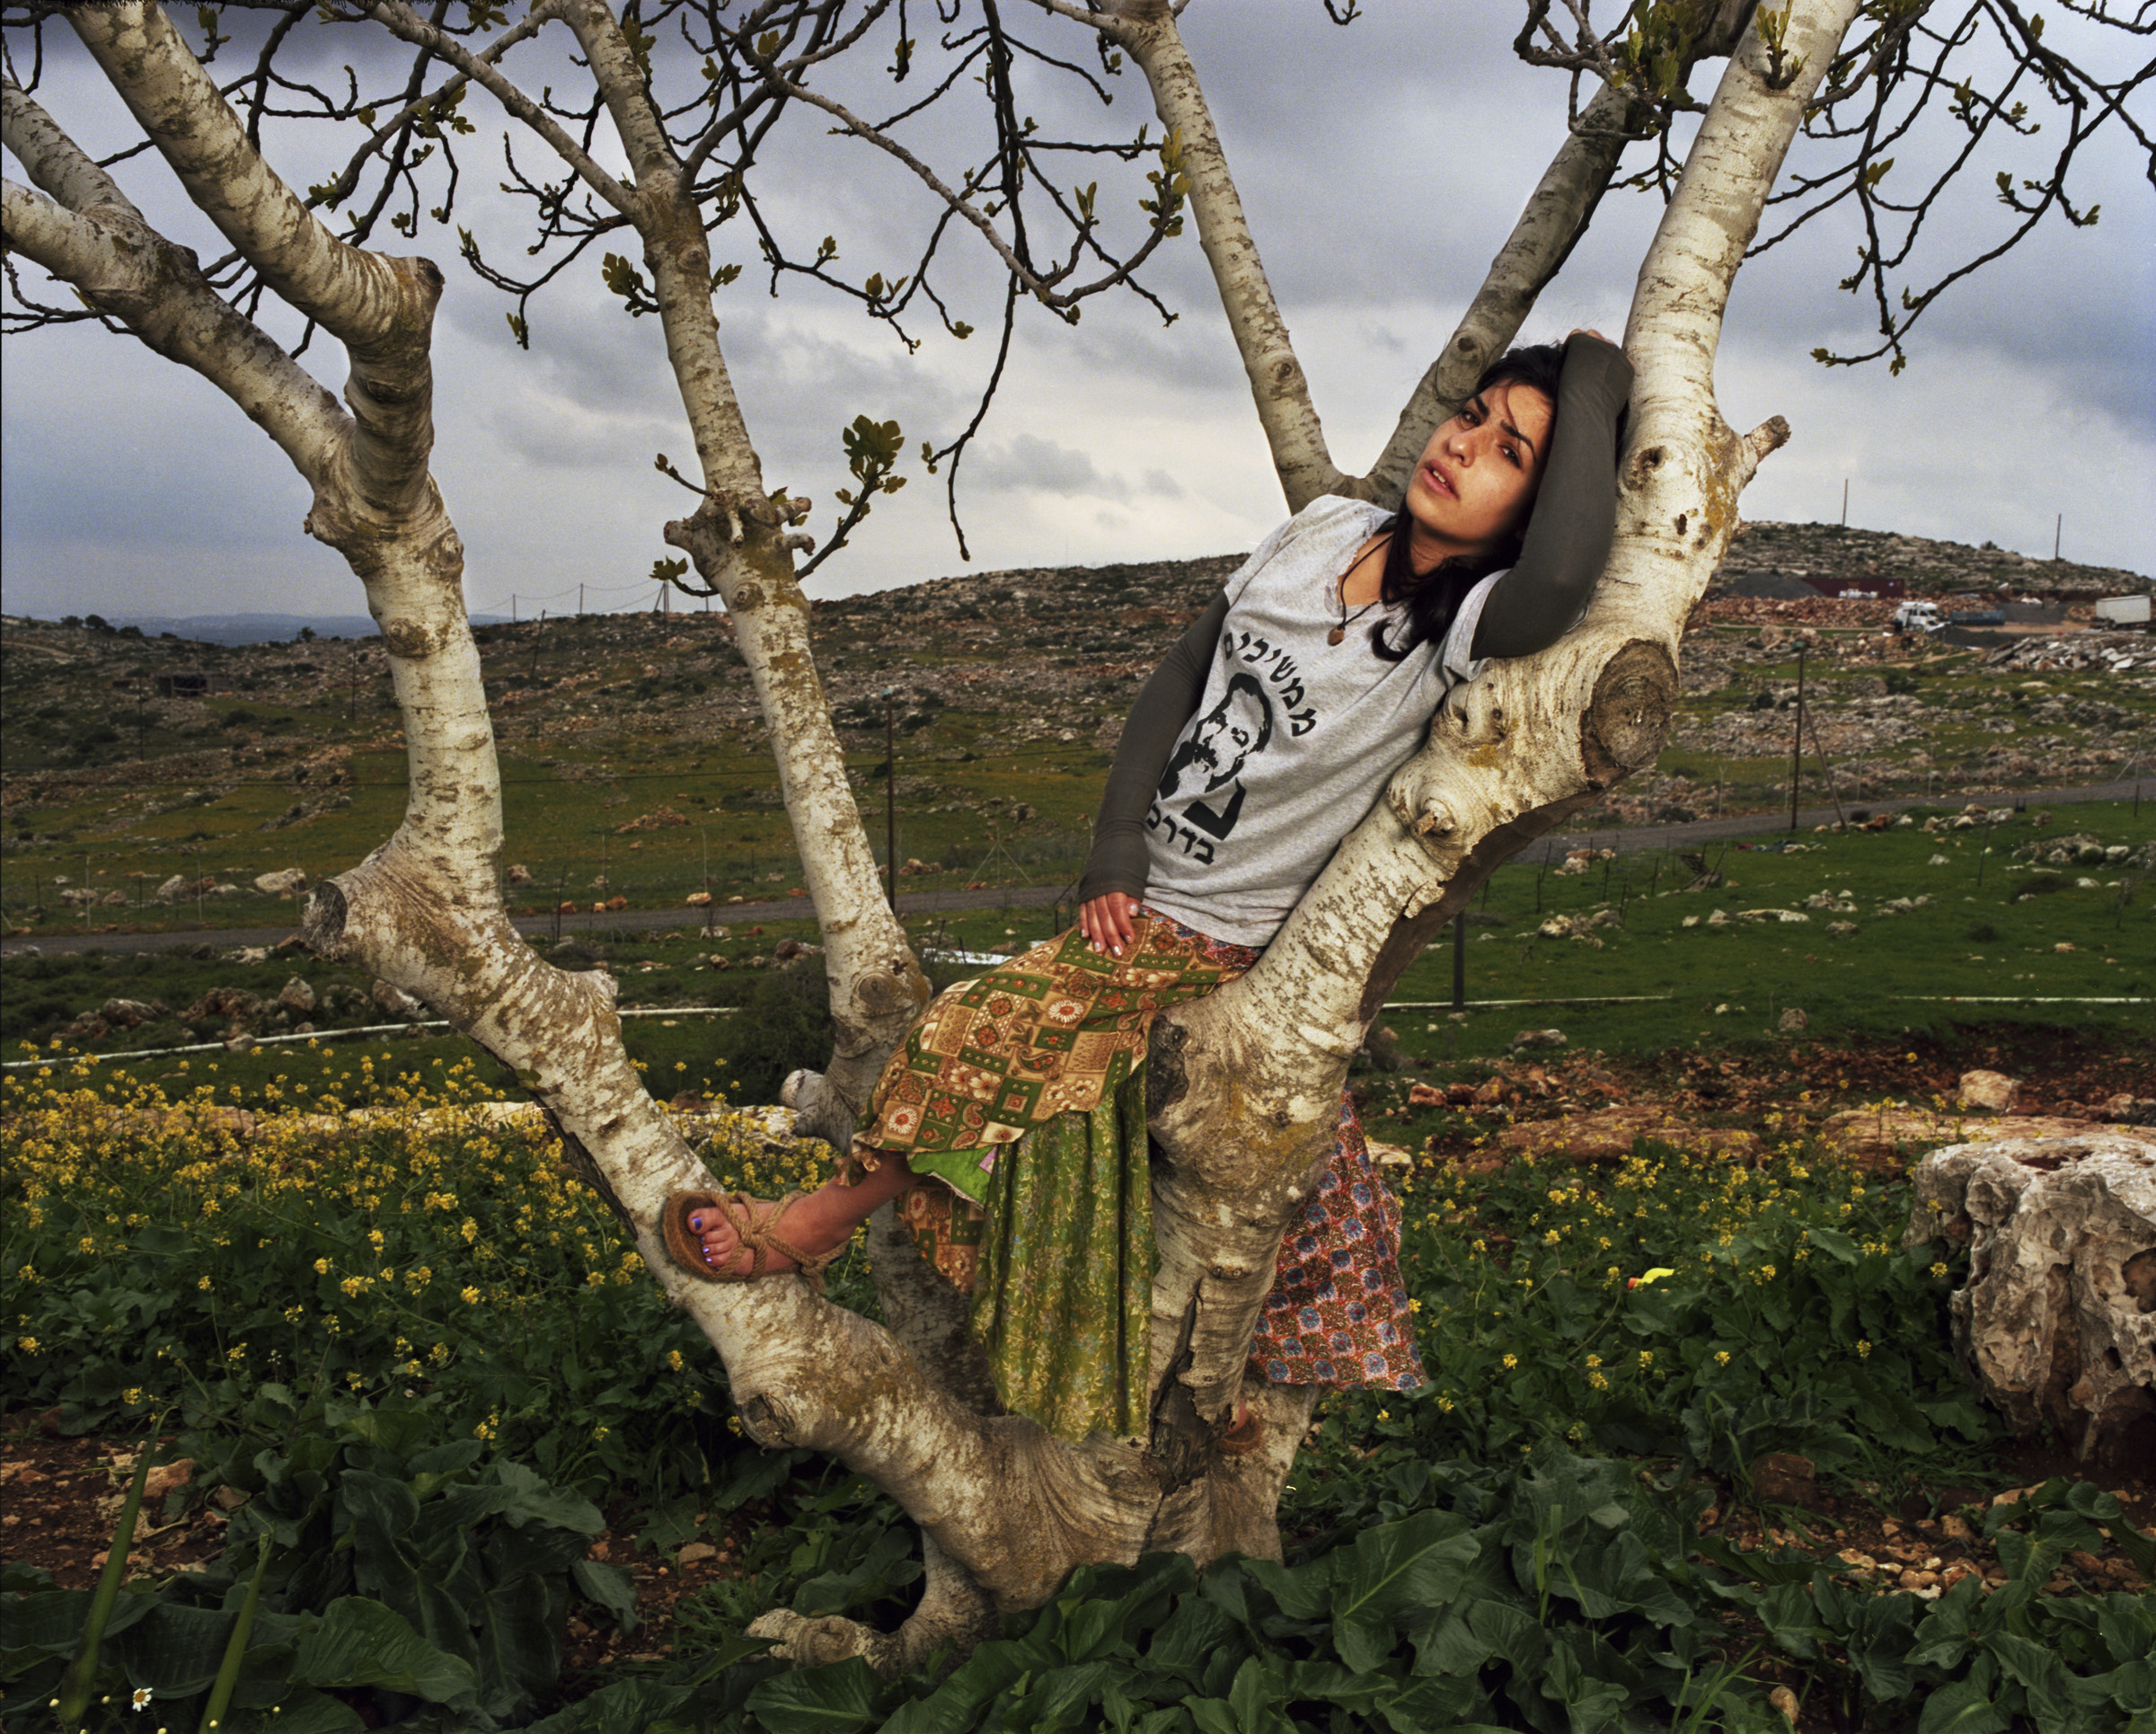 "Roni, 2011   Roni in her backyard of K'far Tapuach Settlement.  The Itamar woman murdered in March was Roni's teacher. ""If someone comes to kill you, then you kill them first, says the Torah,"" says Roni, who was wearing a Meir Kahane t-shirt."